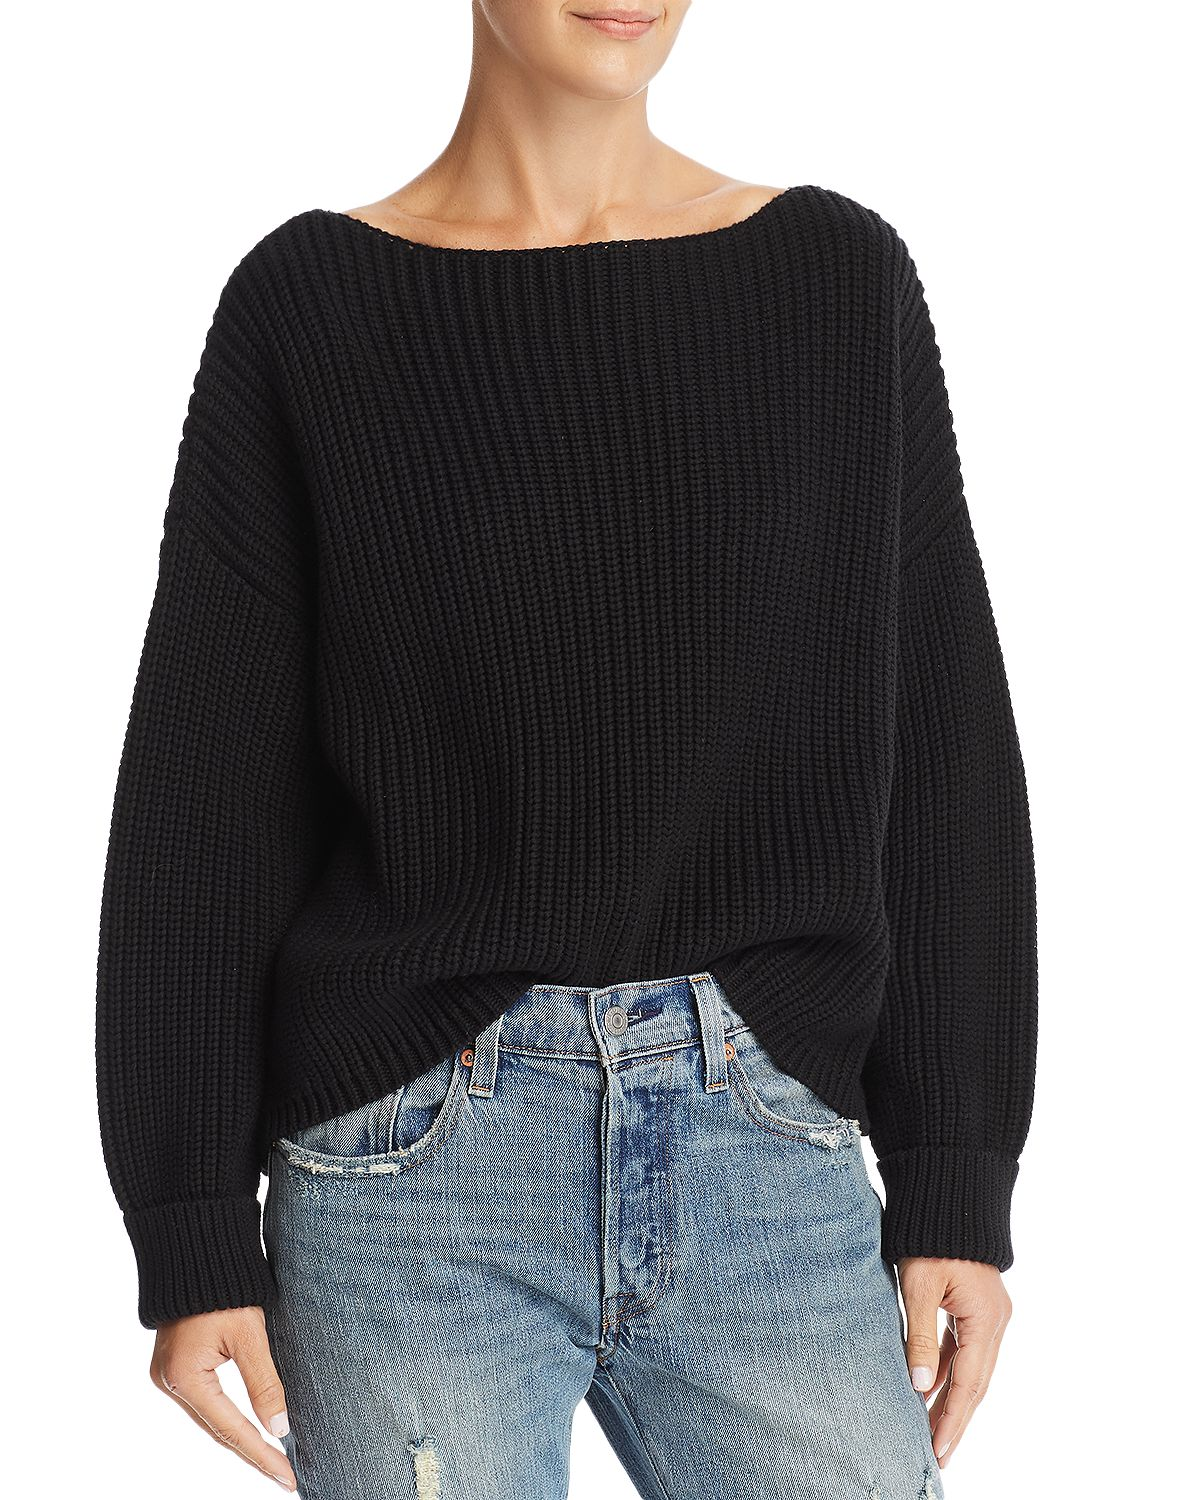 My favorite weekly finds, including this FRENCH CONNECTION Millie Mozart Boatneck Sweater | Click through for the details. | glitterinc.com | @glitterinc